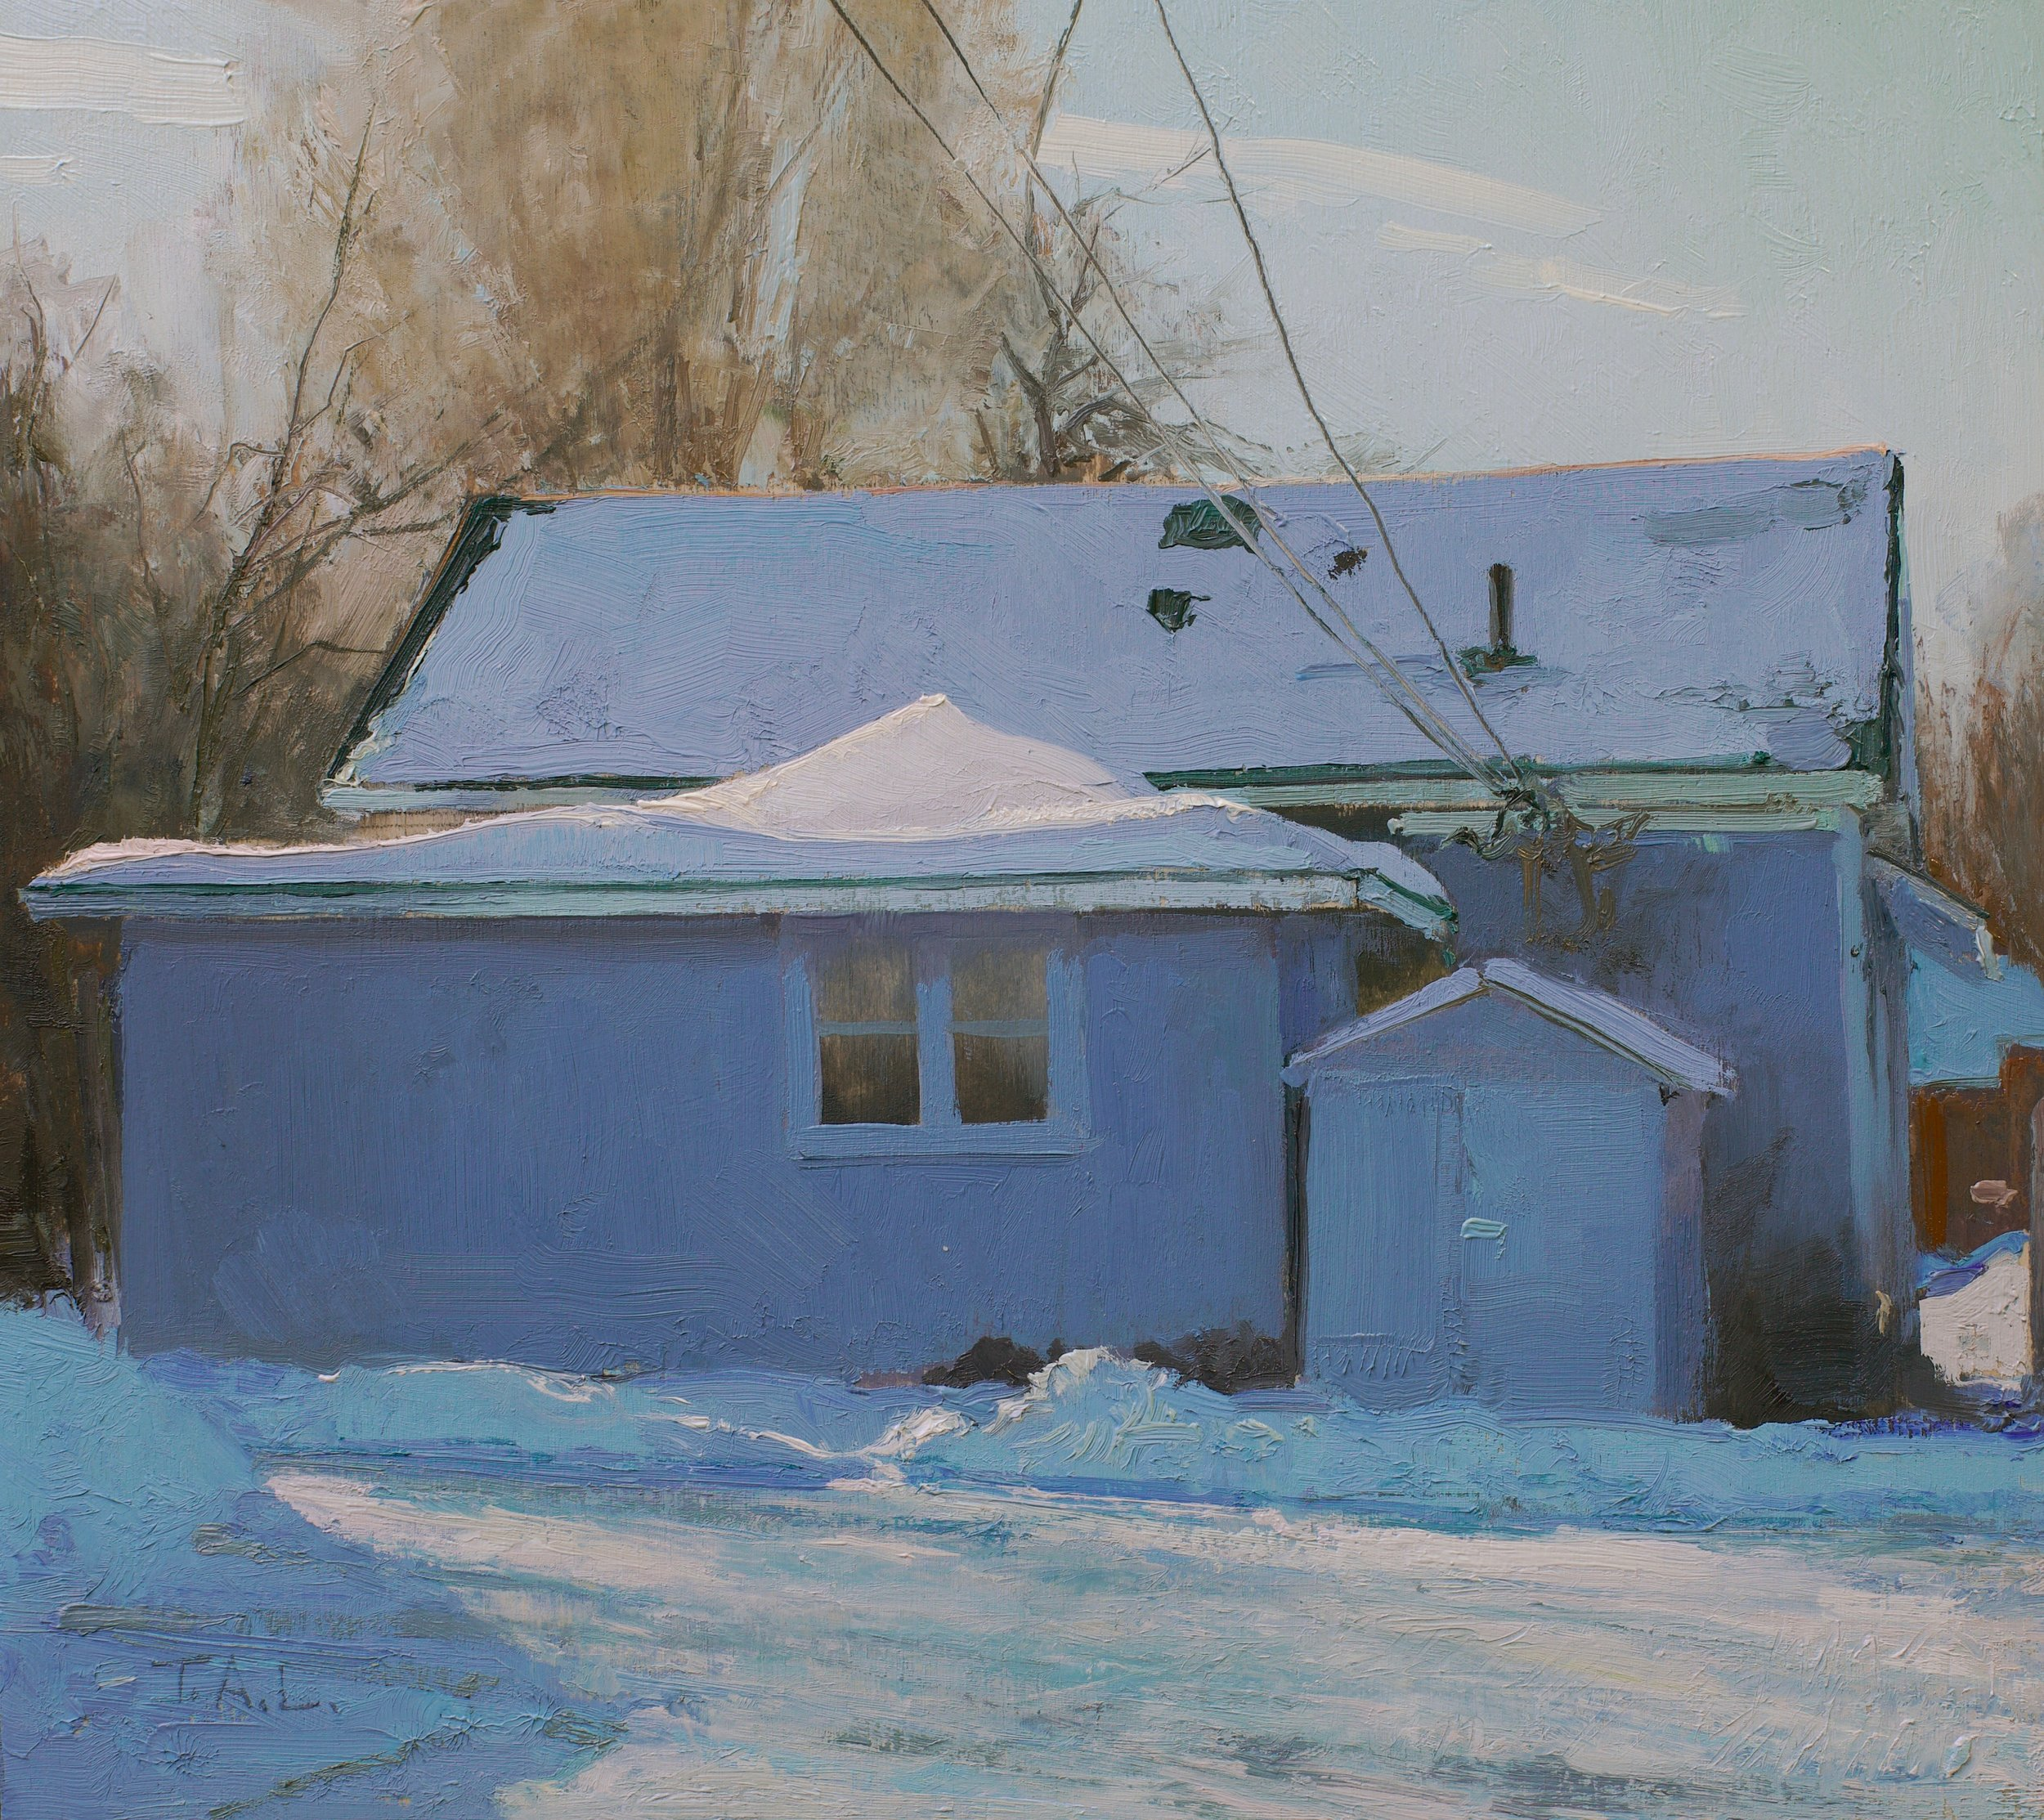 Cold Storage, oil on panel, 9 x 10 in.